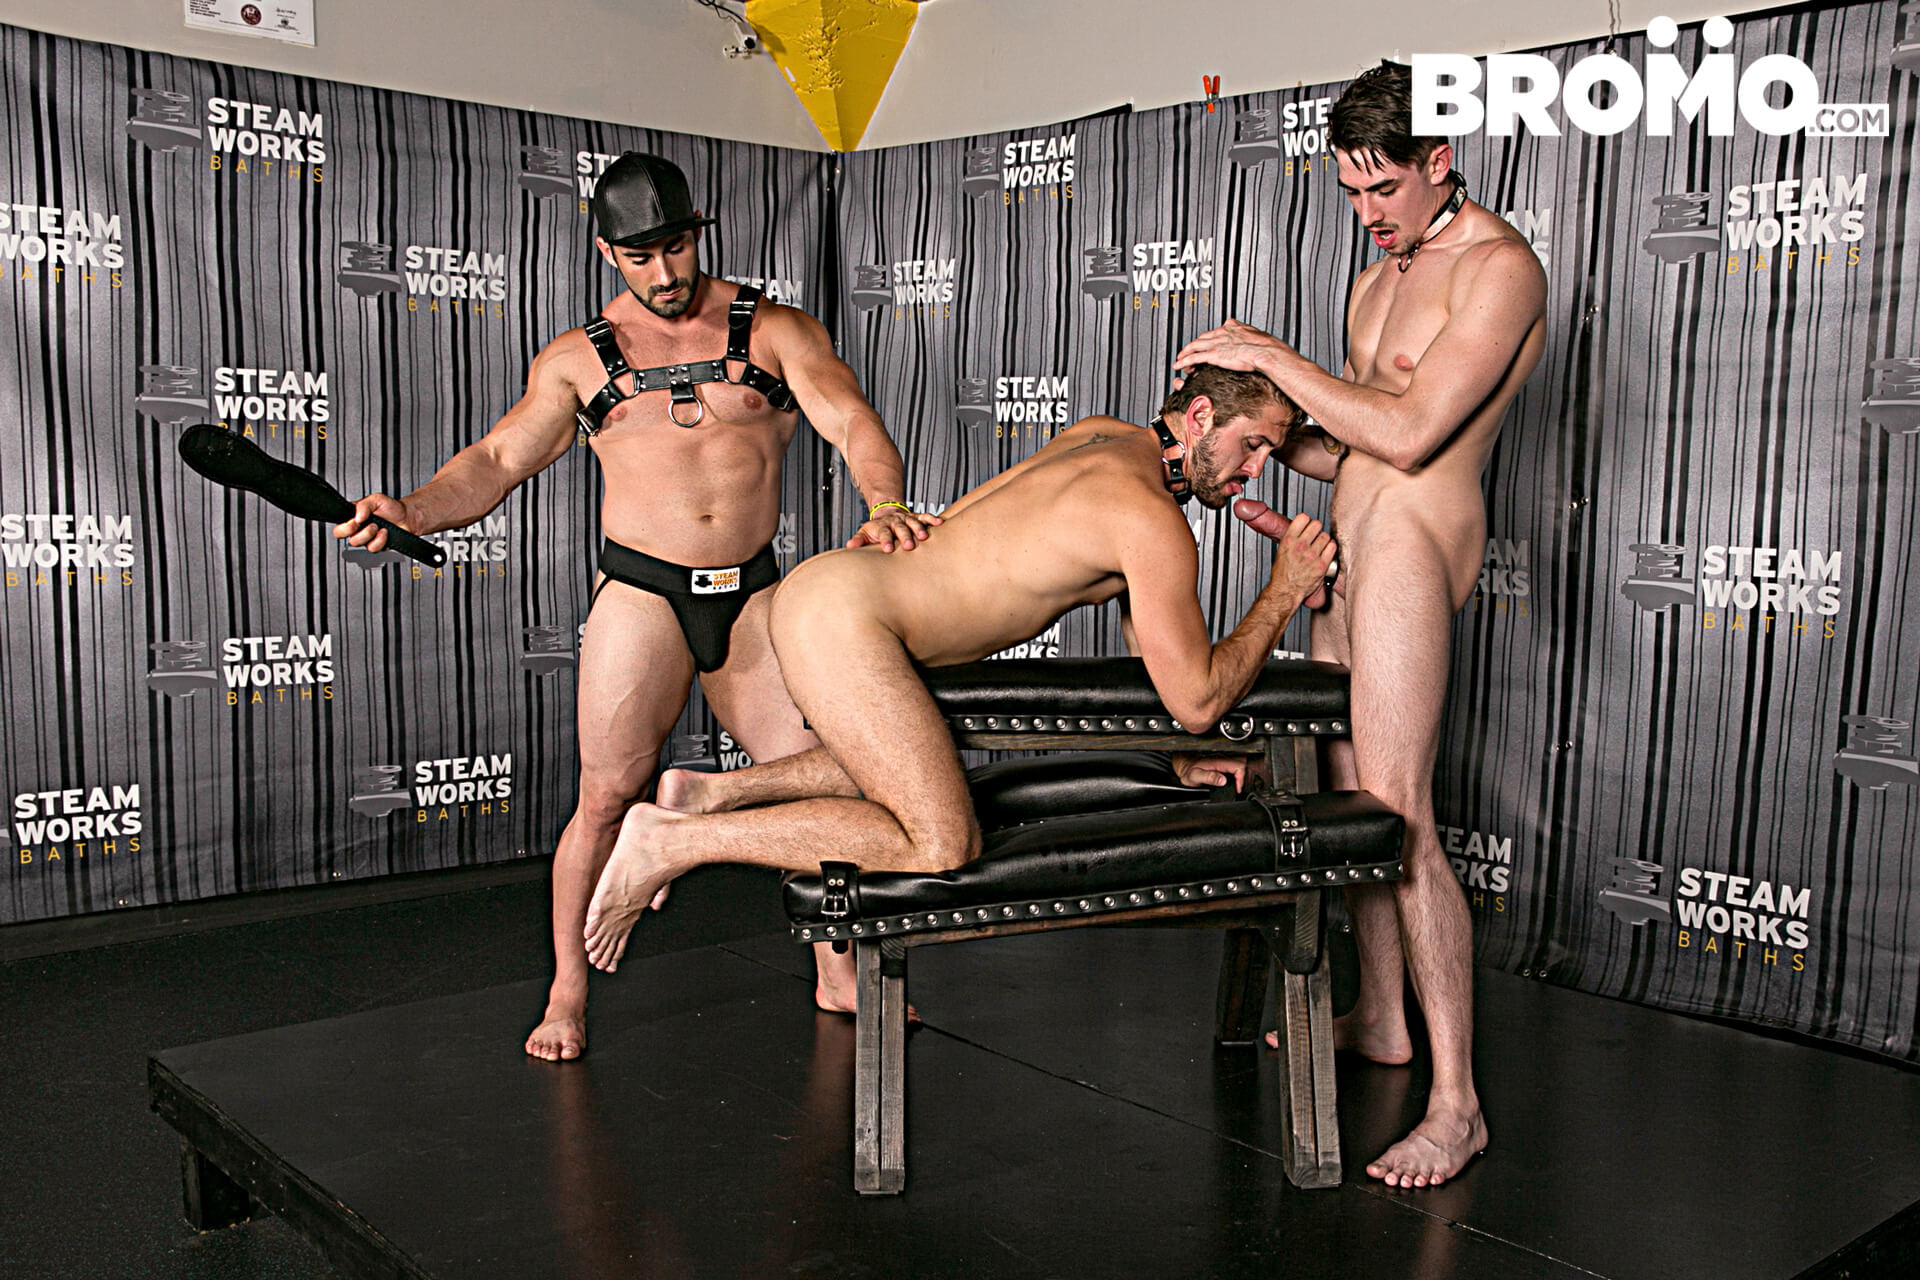 bromo the steam room part 2 jaxton wheeler jack hunter wesley woods gay porn blog image 16